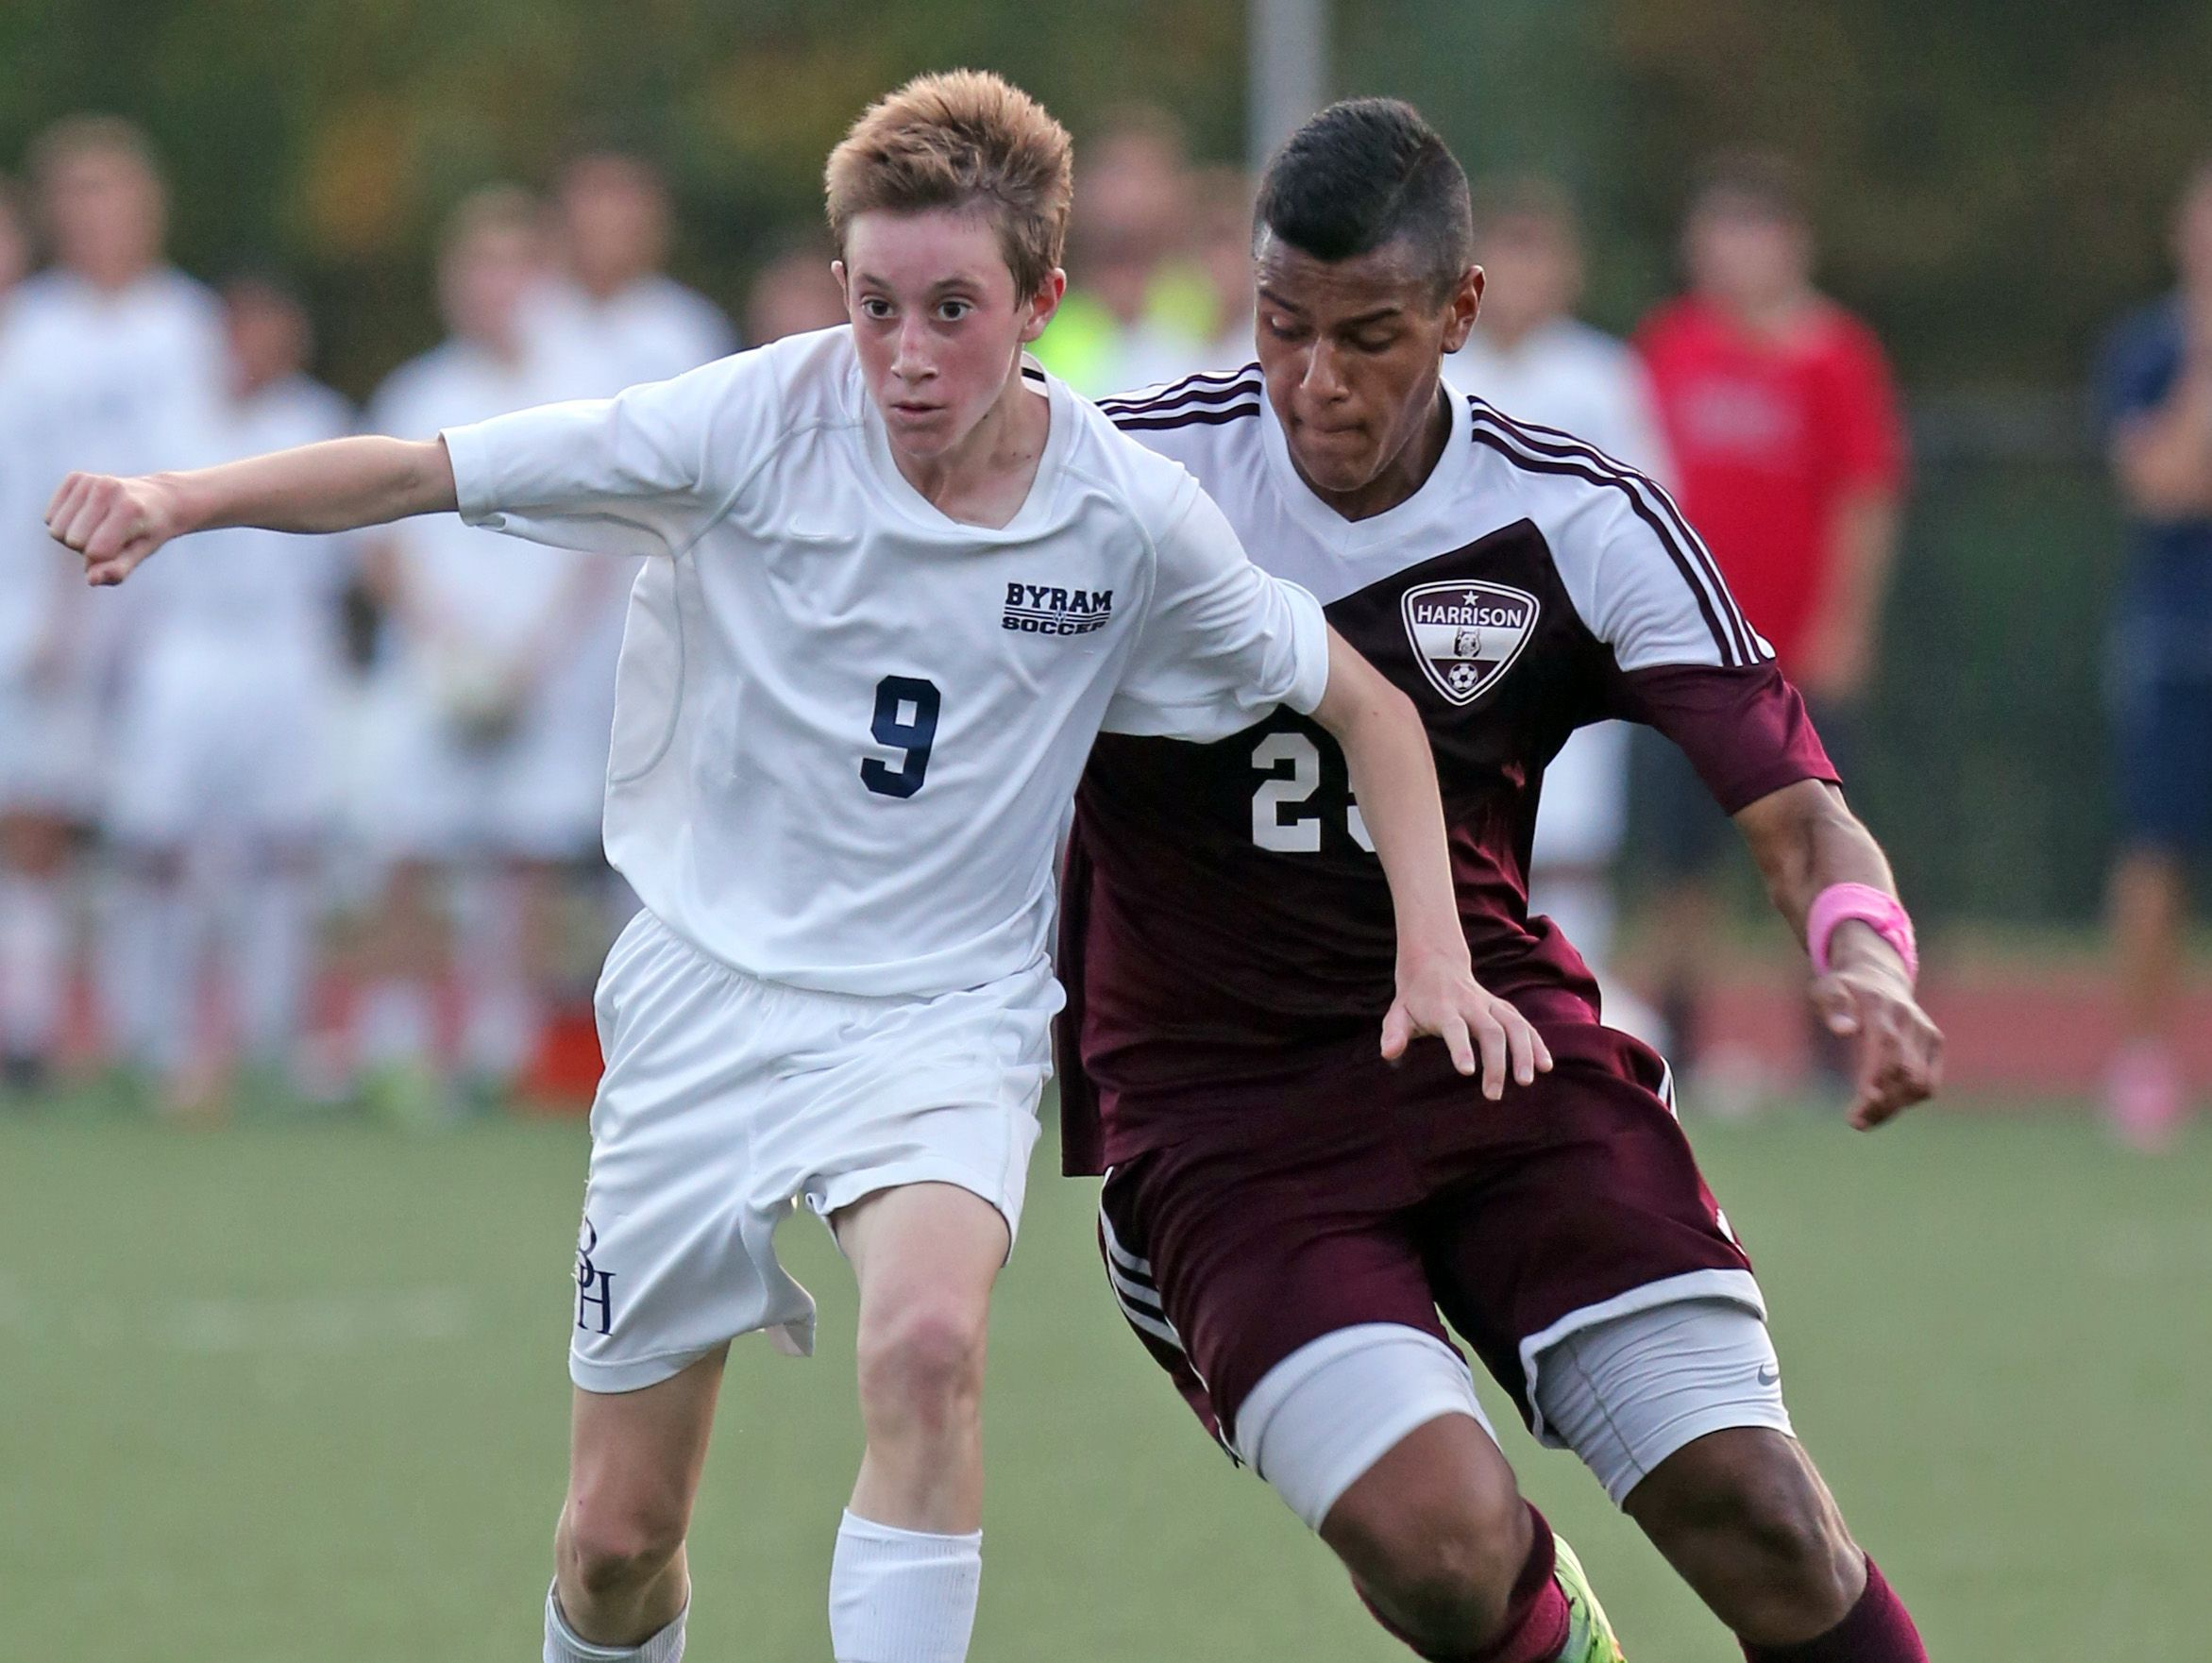 Ryan Noel (9) of Byram Hills and Harrison's Gabe Ferrierra (25) battle for control of the ball during boys soccer game at Byram Hills High School in Armonk Oct. 17, 2016. Byram Hills defeats Harrison 3-1.